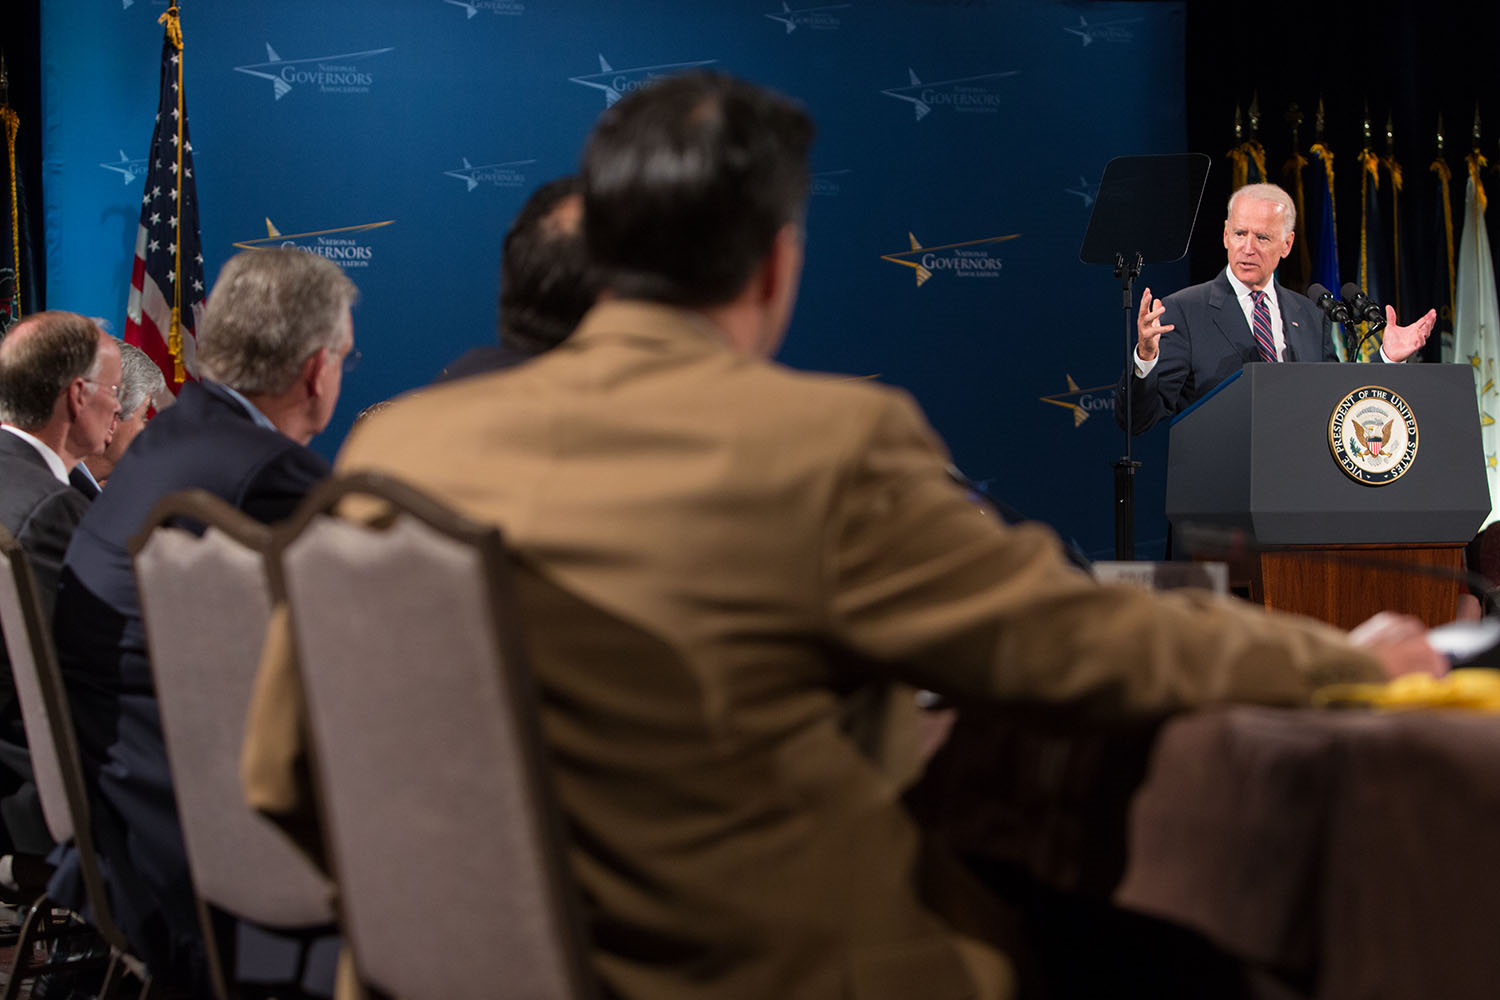 Vice President Biden speaks at the National Governors Association Meeting in Nashville, Tennessee, July 11, 2014.